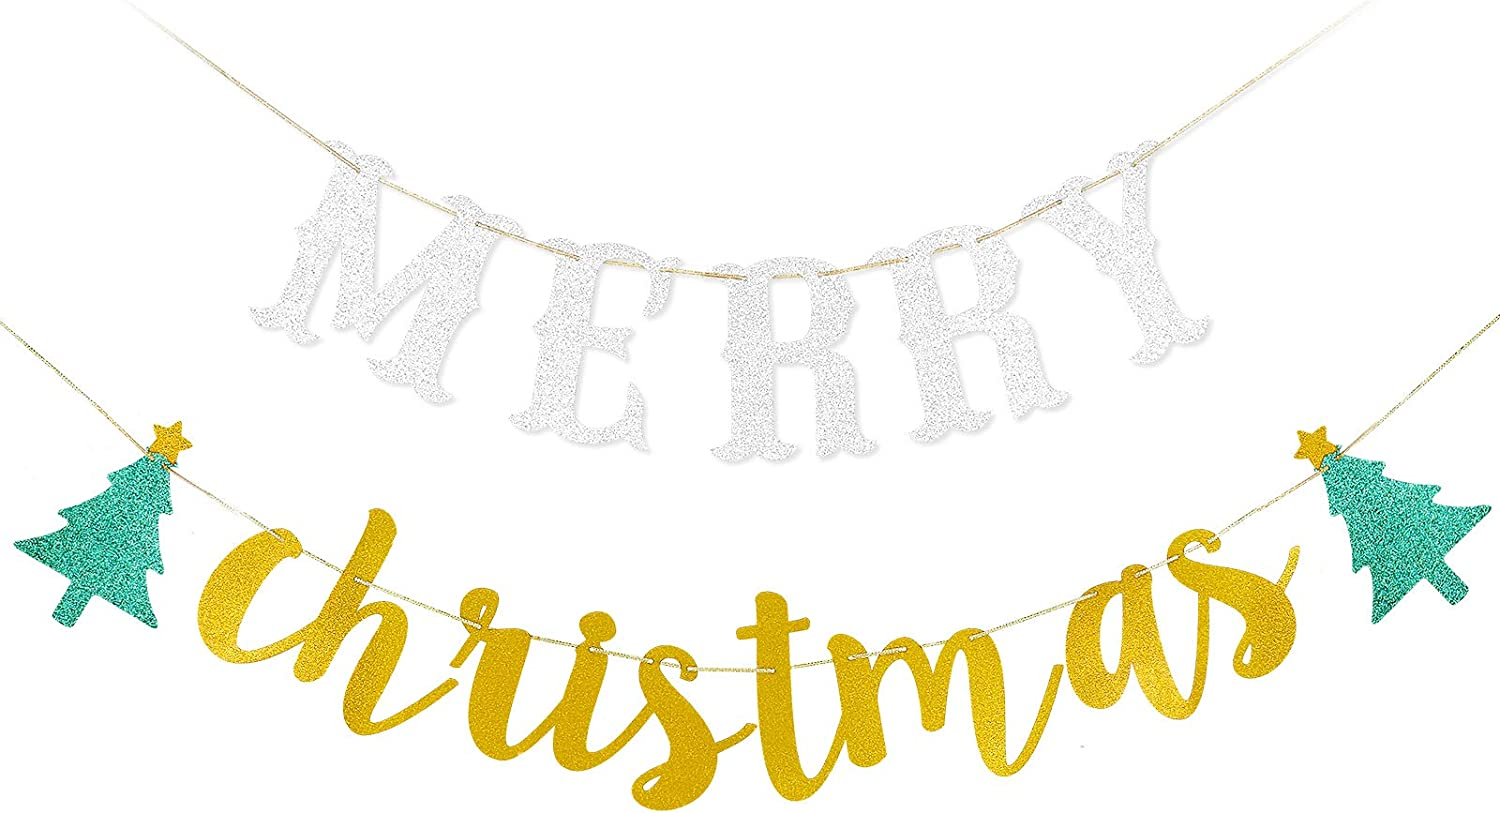 Merry Christmas Silver/&Gold Banner Christmas Holiday New Years Eve Party Decorations,Xmas Mantel Fireplace Home Indoor Outdoor Decorations Supplies